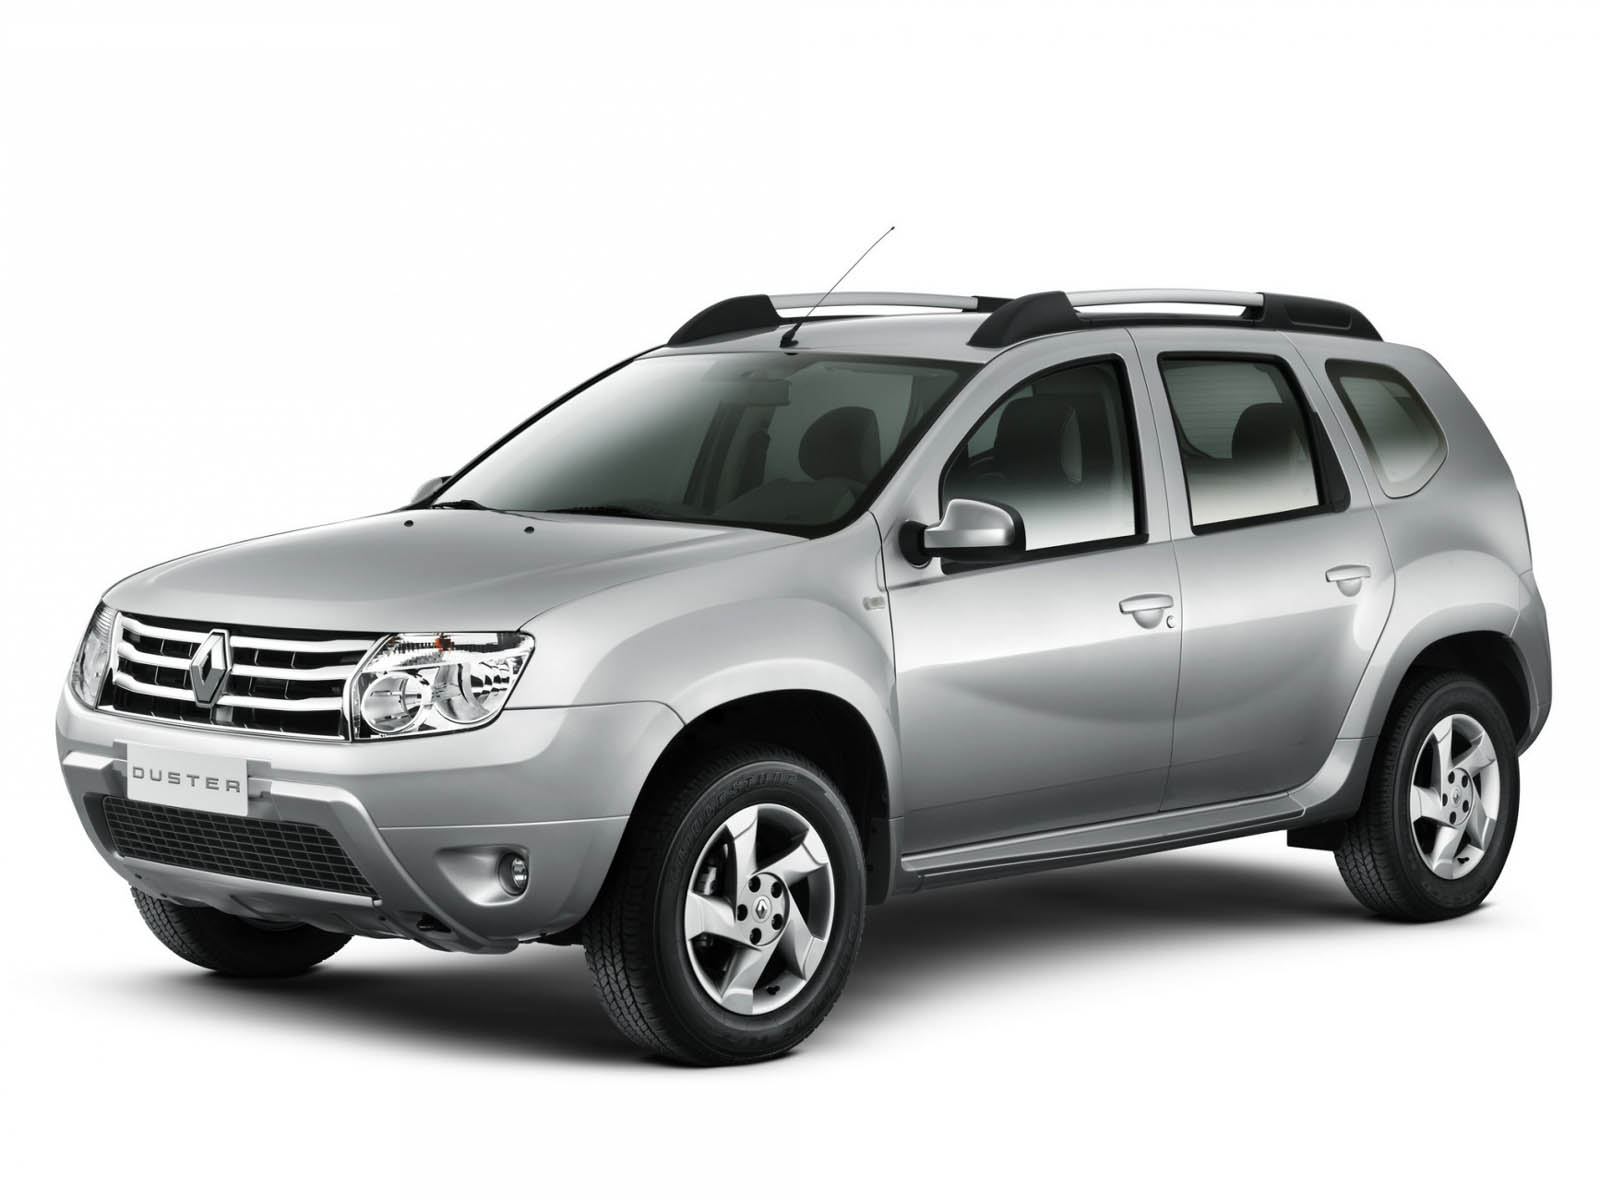 Tag: Renault Duster Car Wallpapers, Images, Photos, Pictures and ...